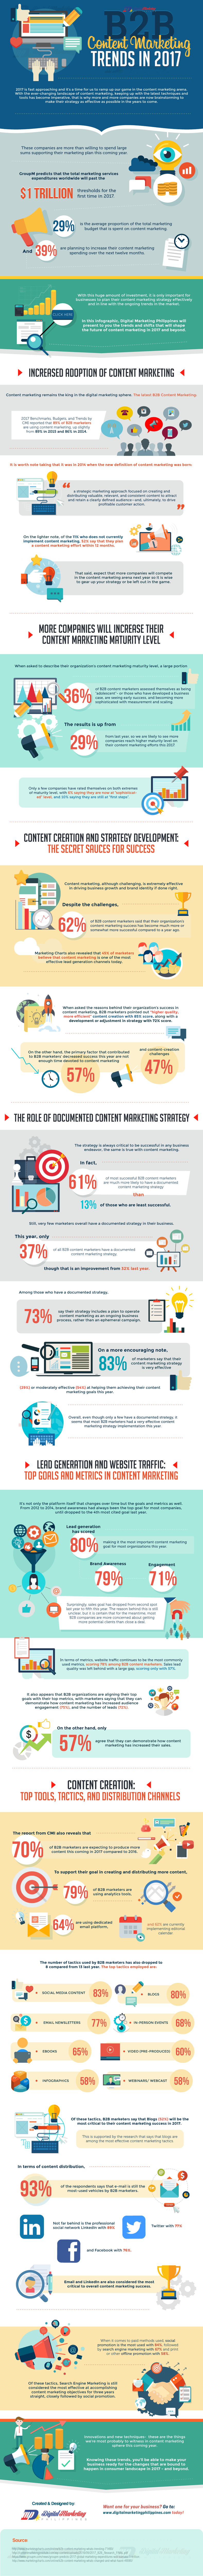 B2B-Content-Marketing-Trends-in-2017-HD.png